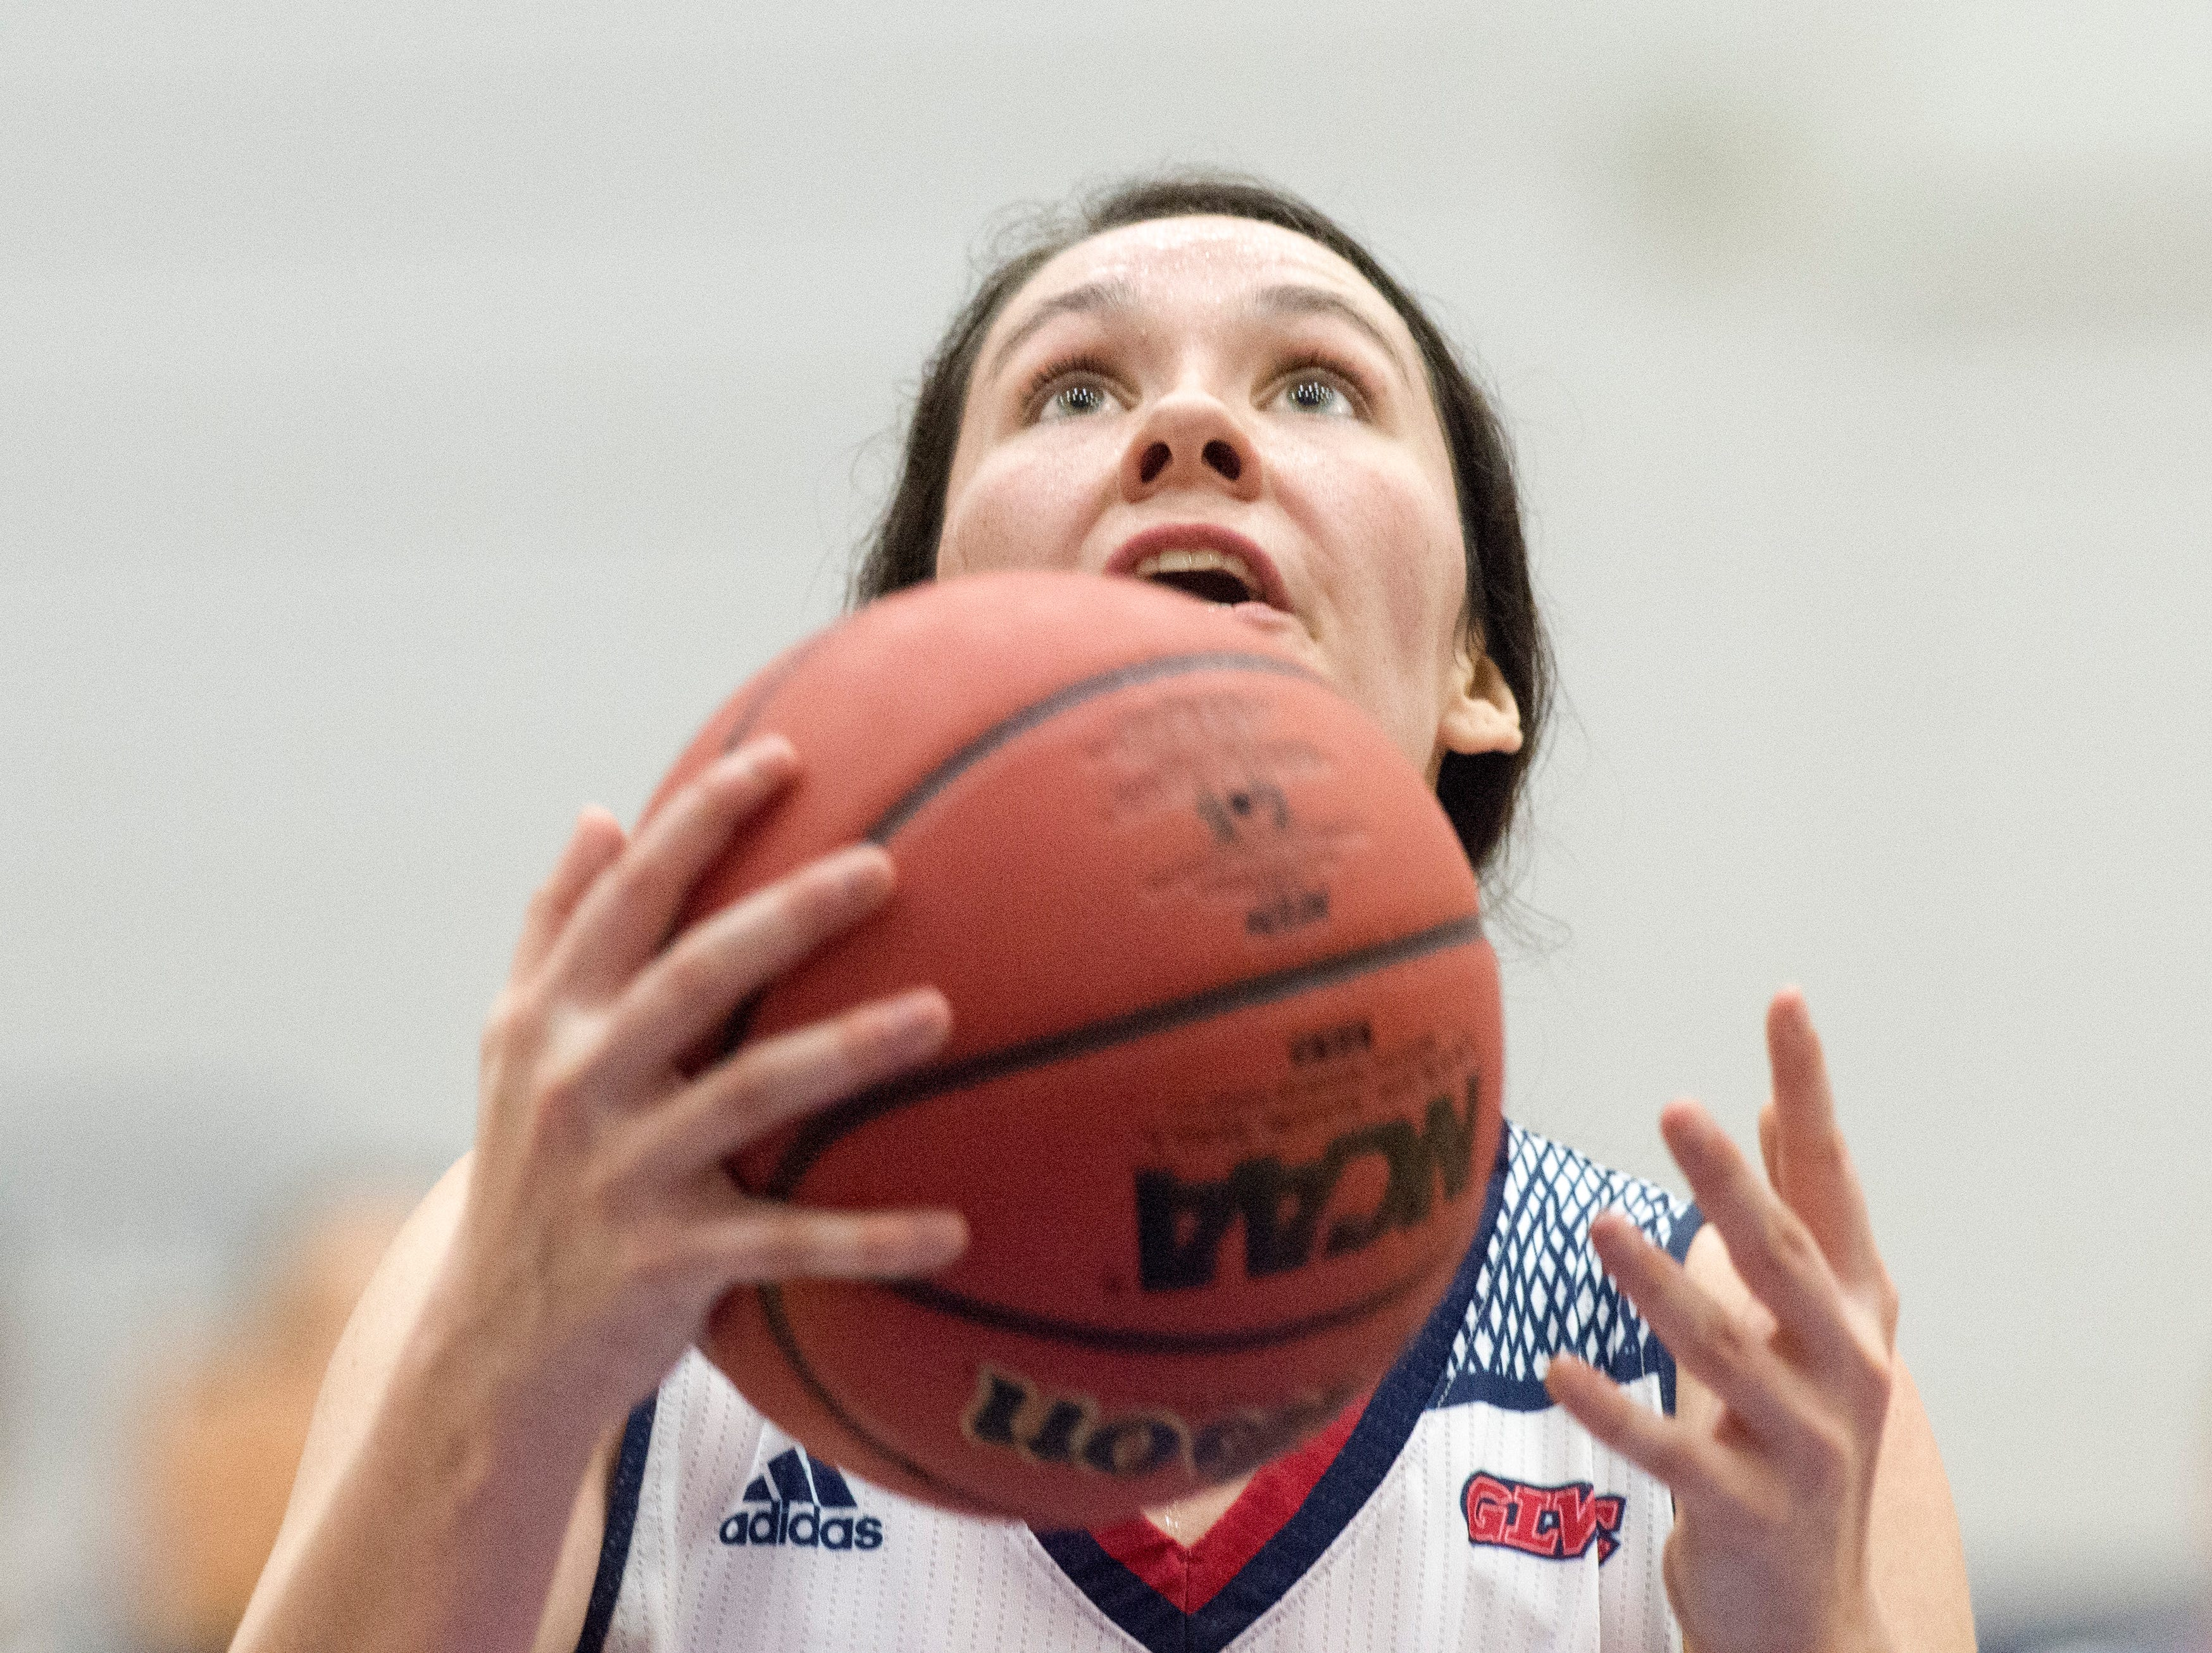 USI's Alex Davidson (21) looks up at the basket as she takes a shot during the USI vs Bellarmine game at the PAC Saturday, Dec. 1, 2018.